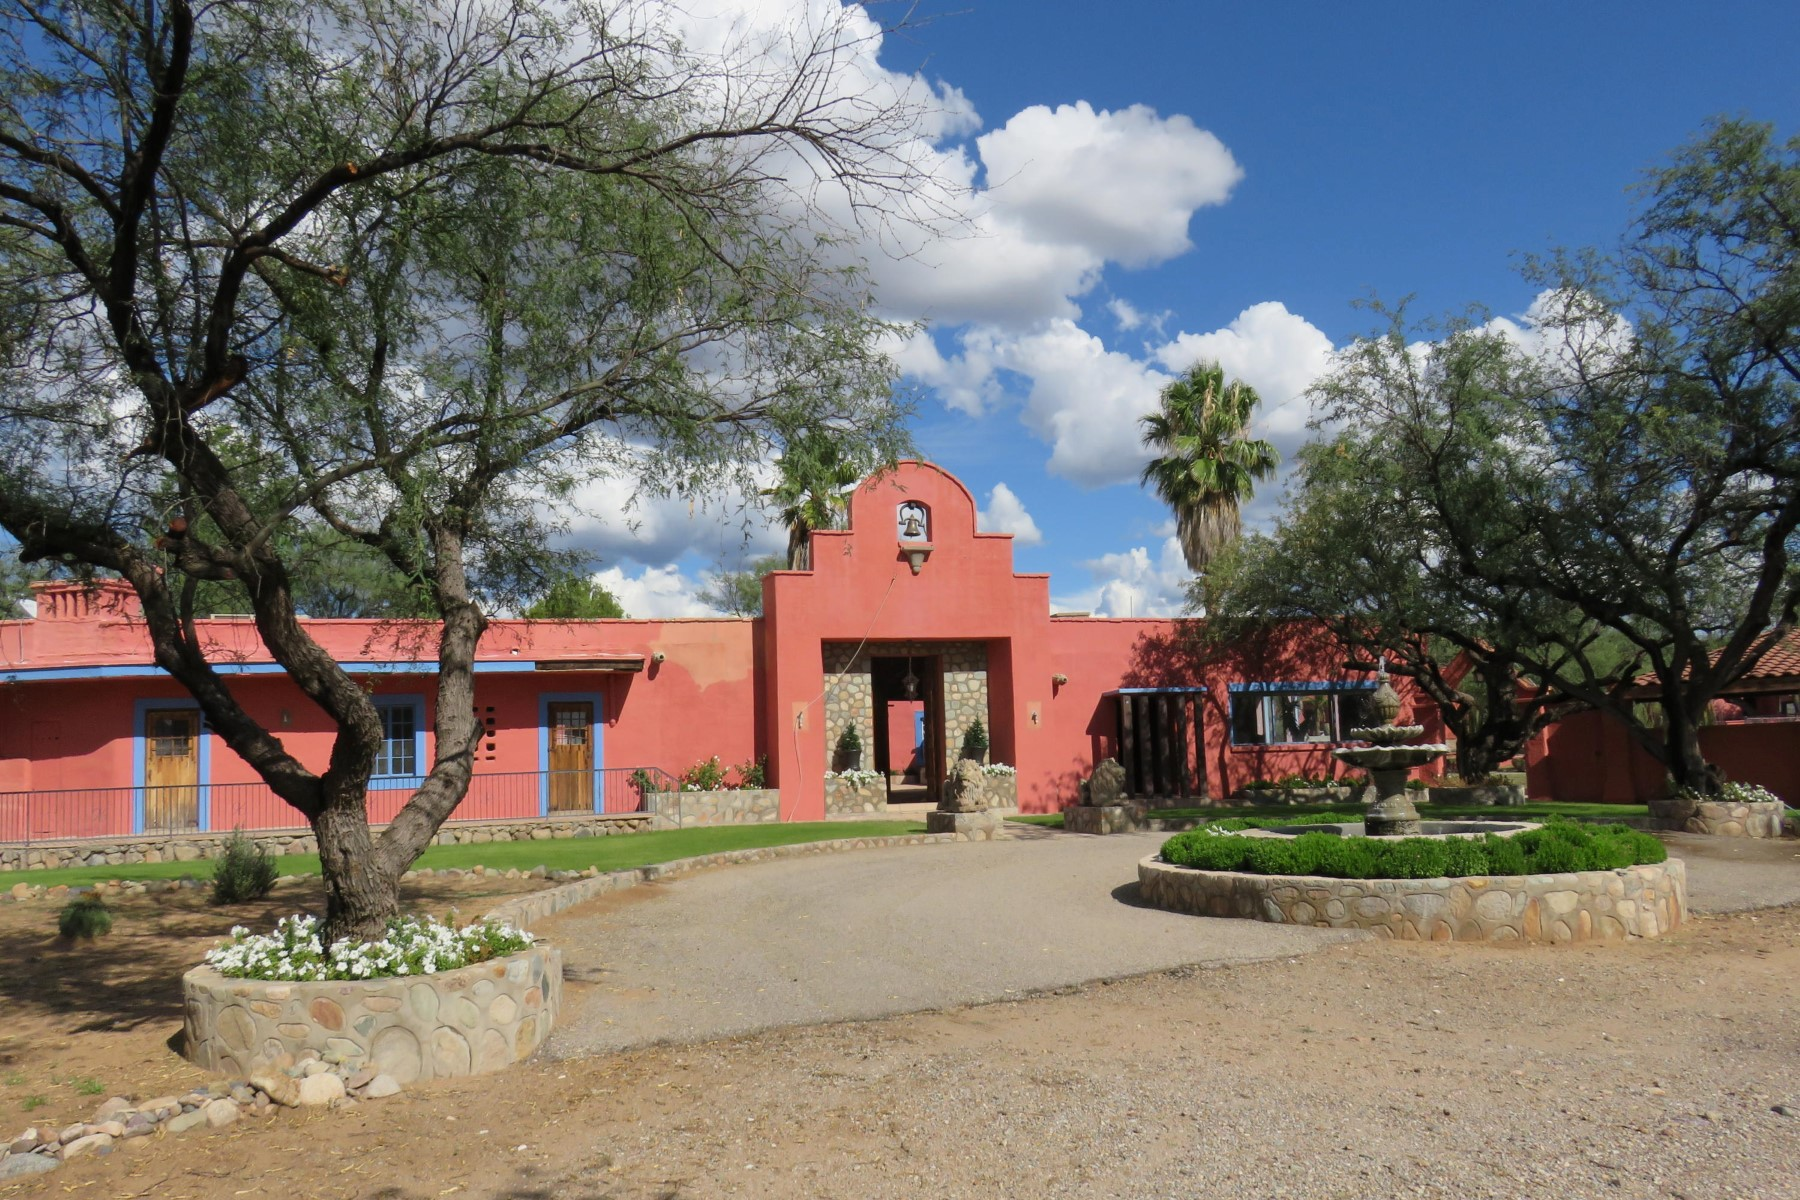 Land for Sale at Historic Rex Ranch 131 Amado Montosa Rd Amado, Arizona, 85645 United States